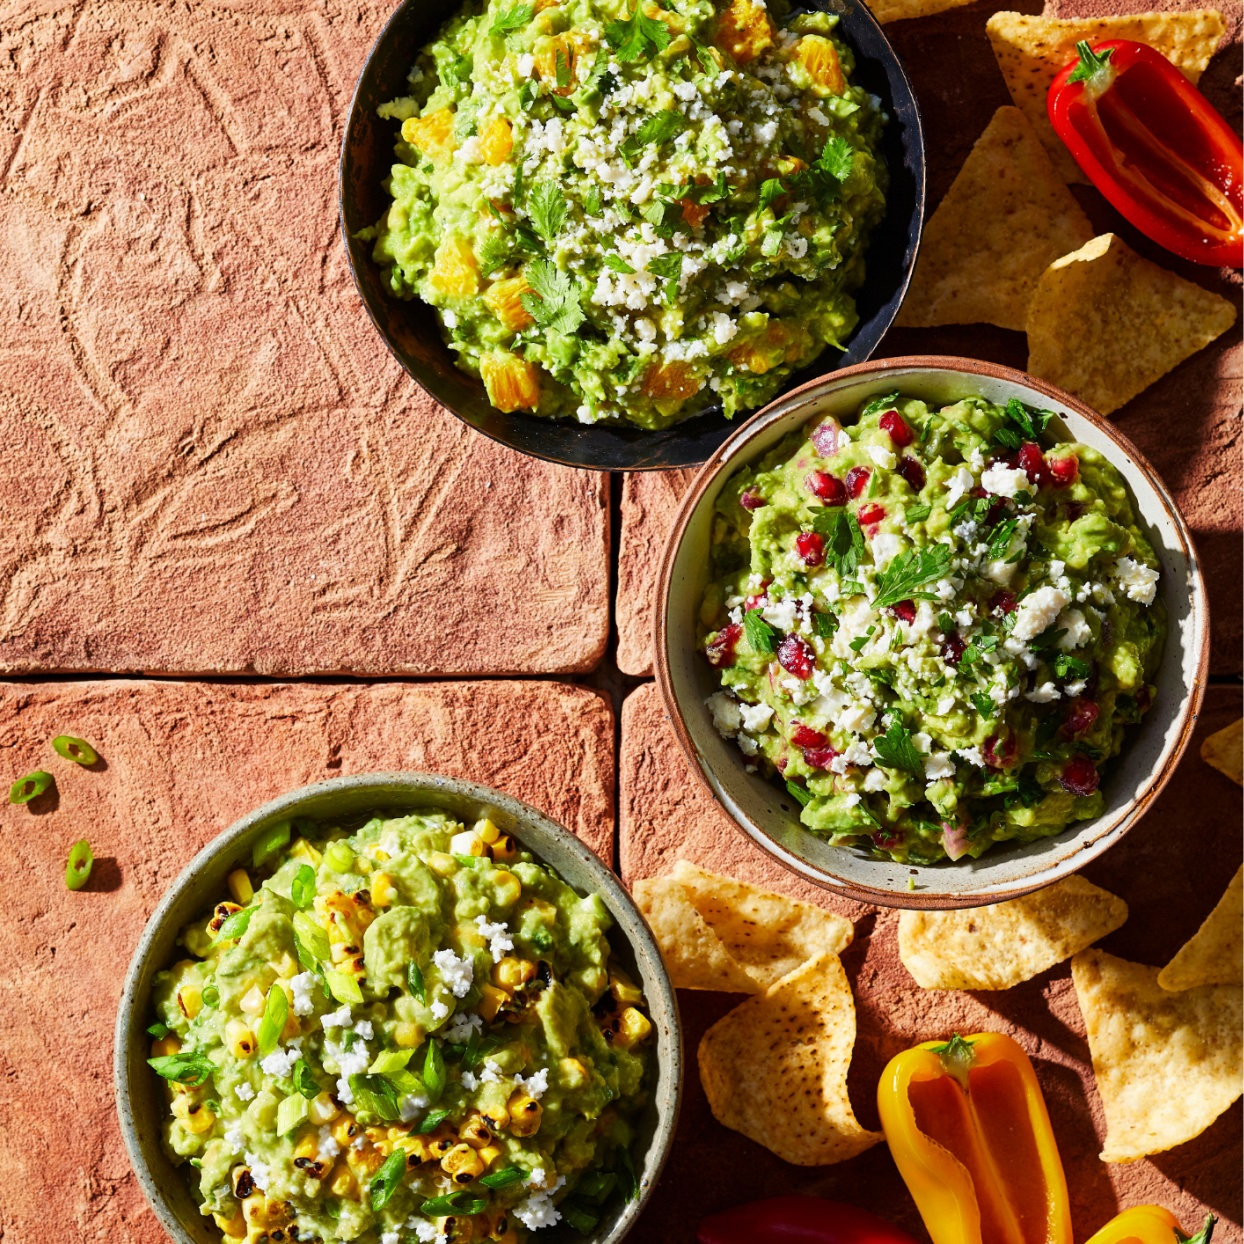 How to Make a Basic Guacamole Dip With 3 Flavorful Variations